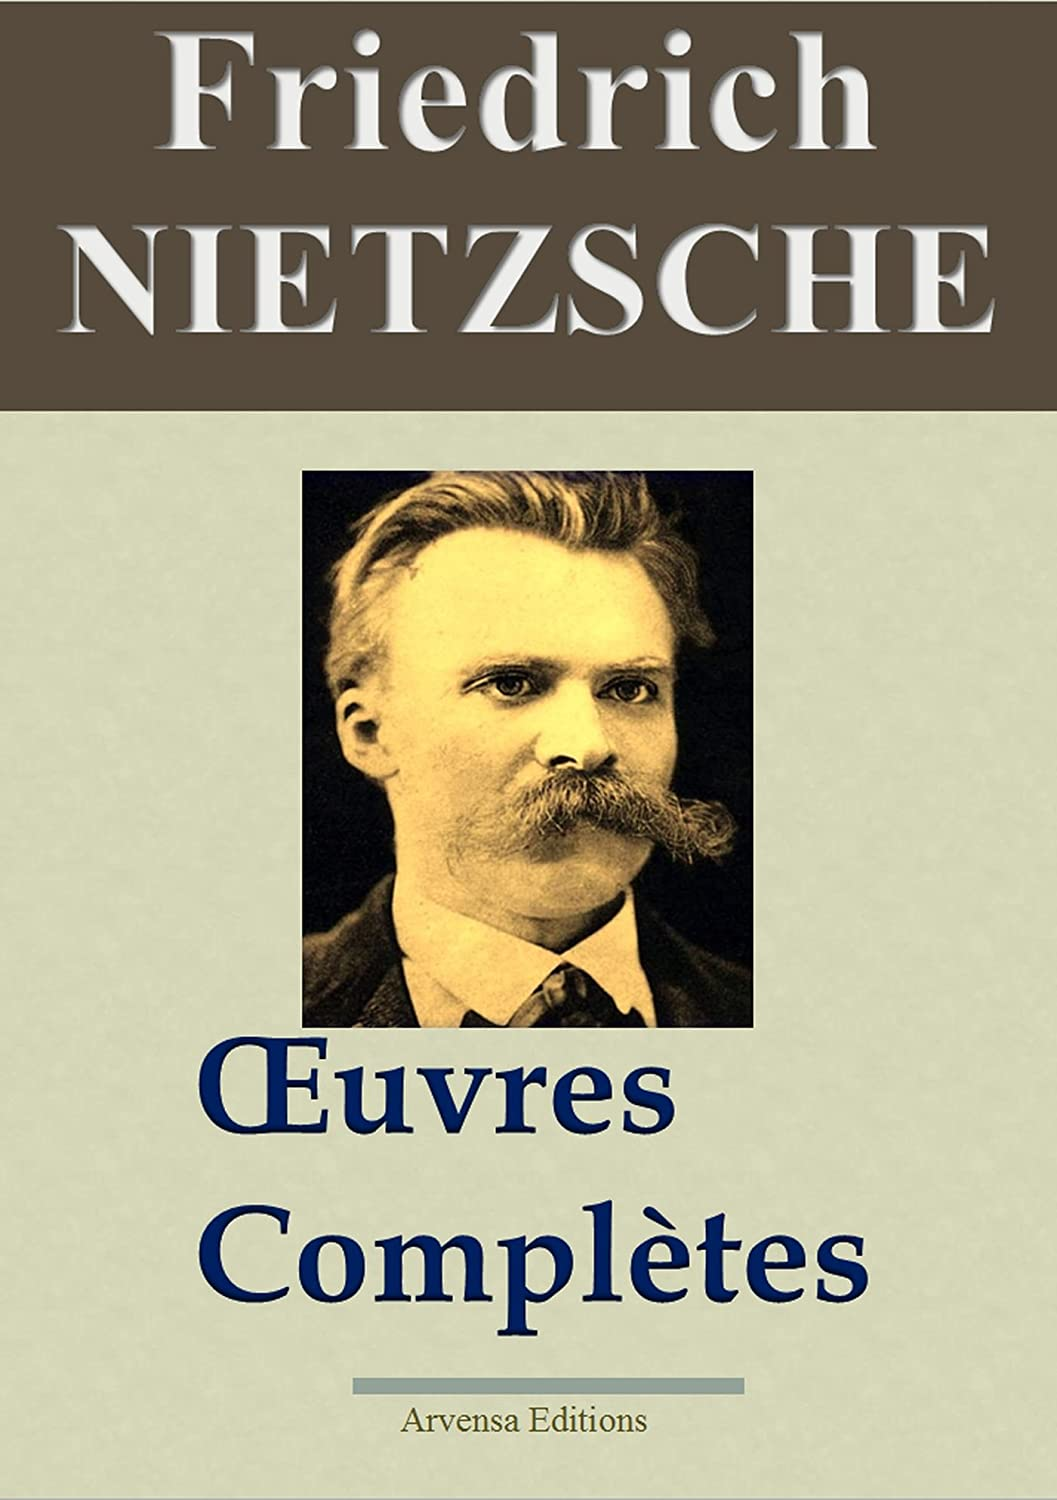 Photo de la couverture du livre